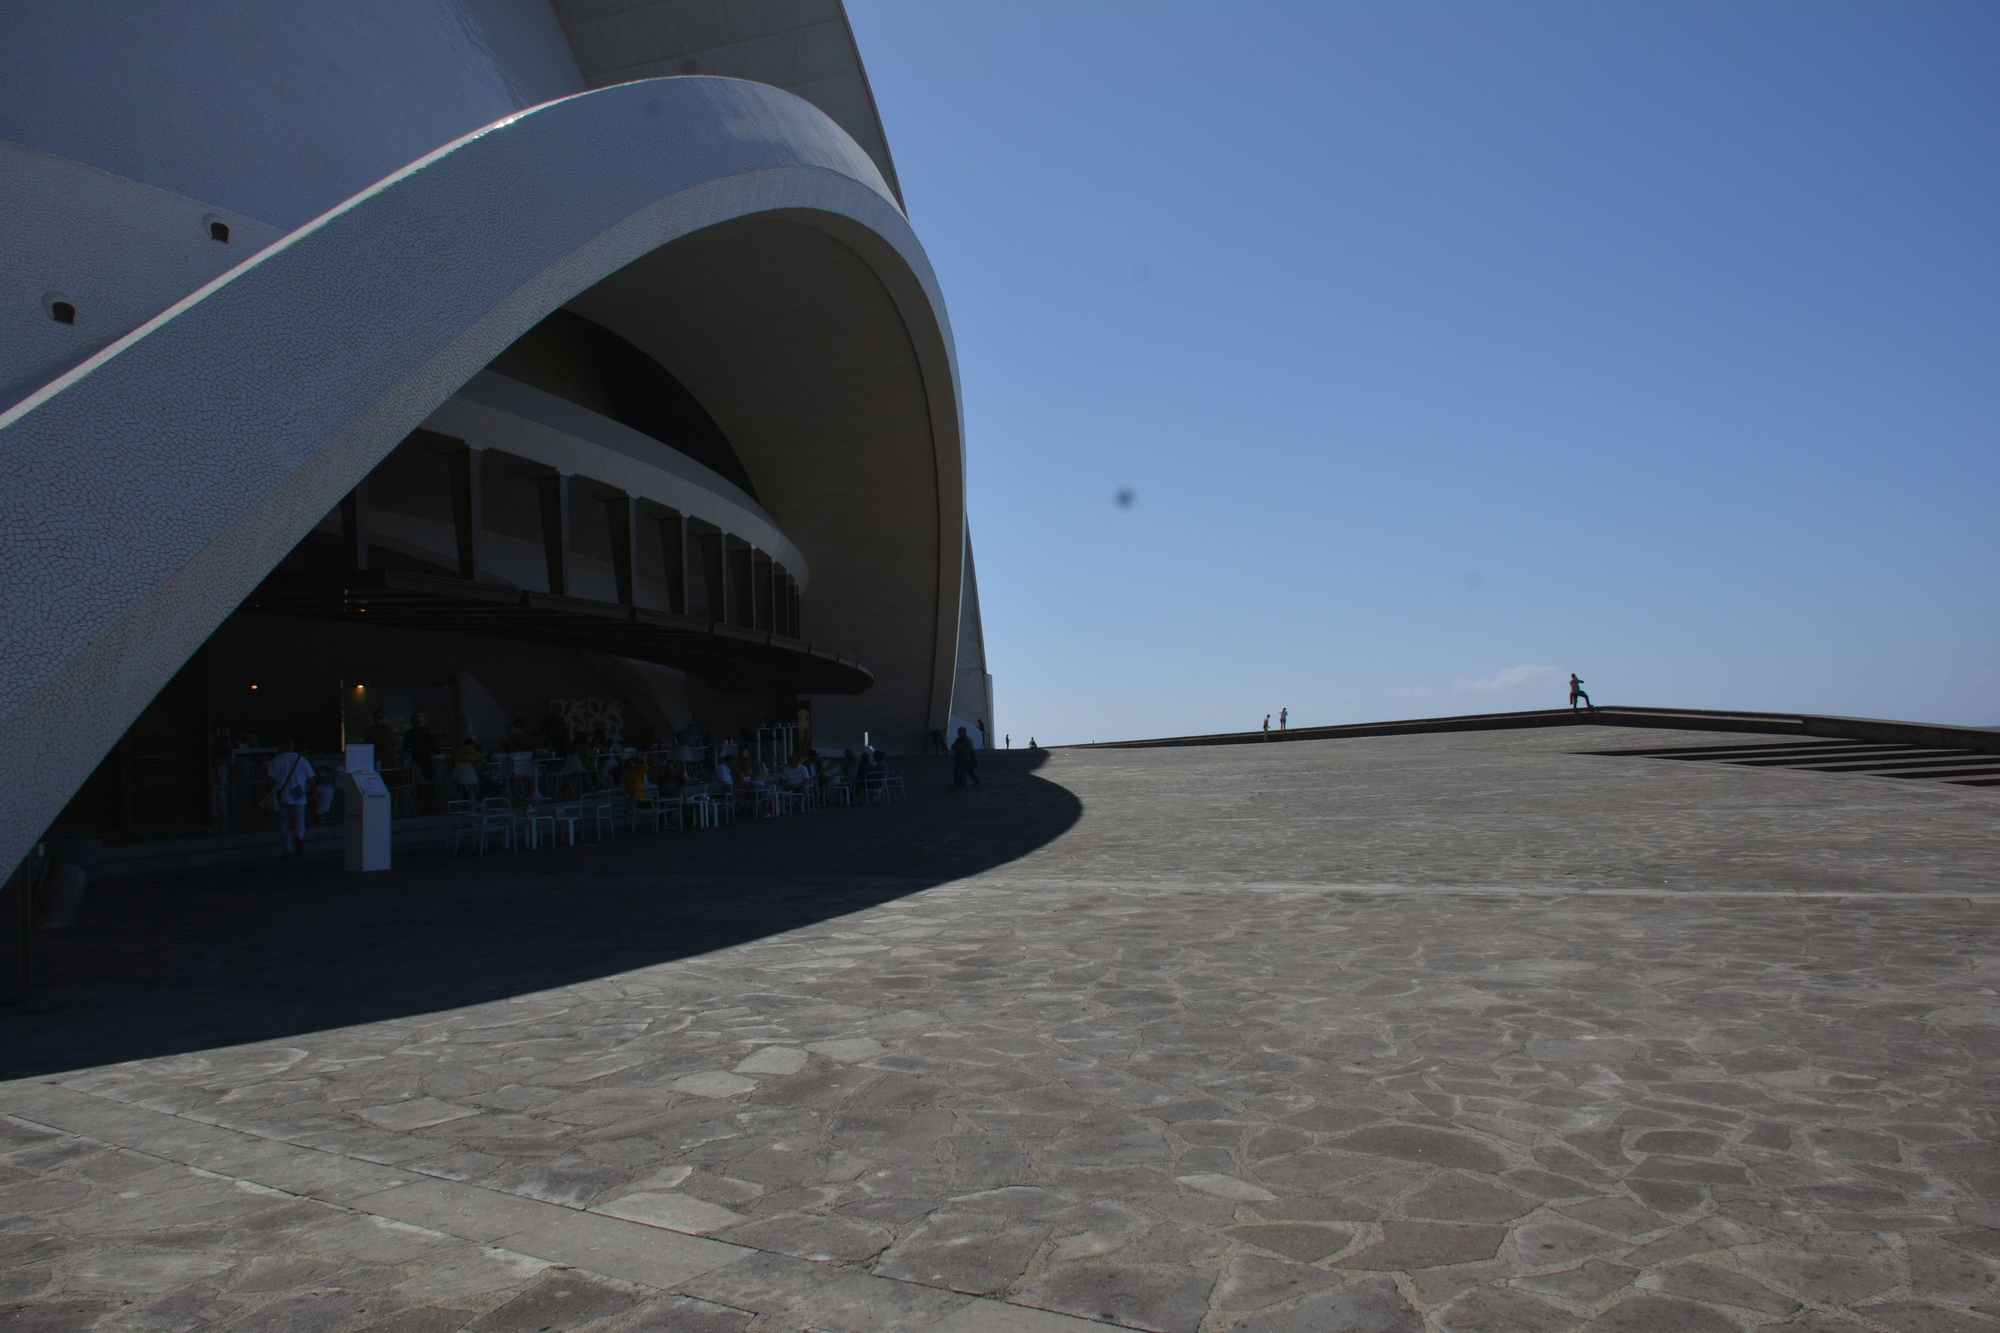 Auditorium-de-Santa-Cruz-Tenerife-architecture_04